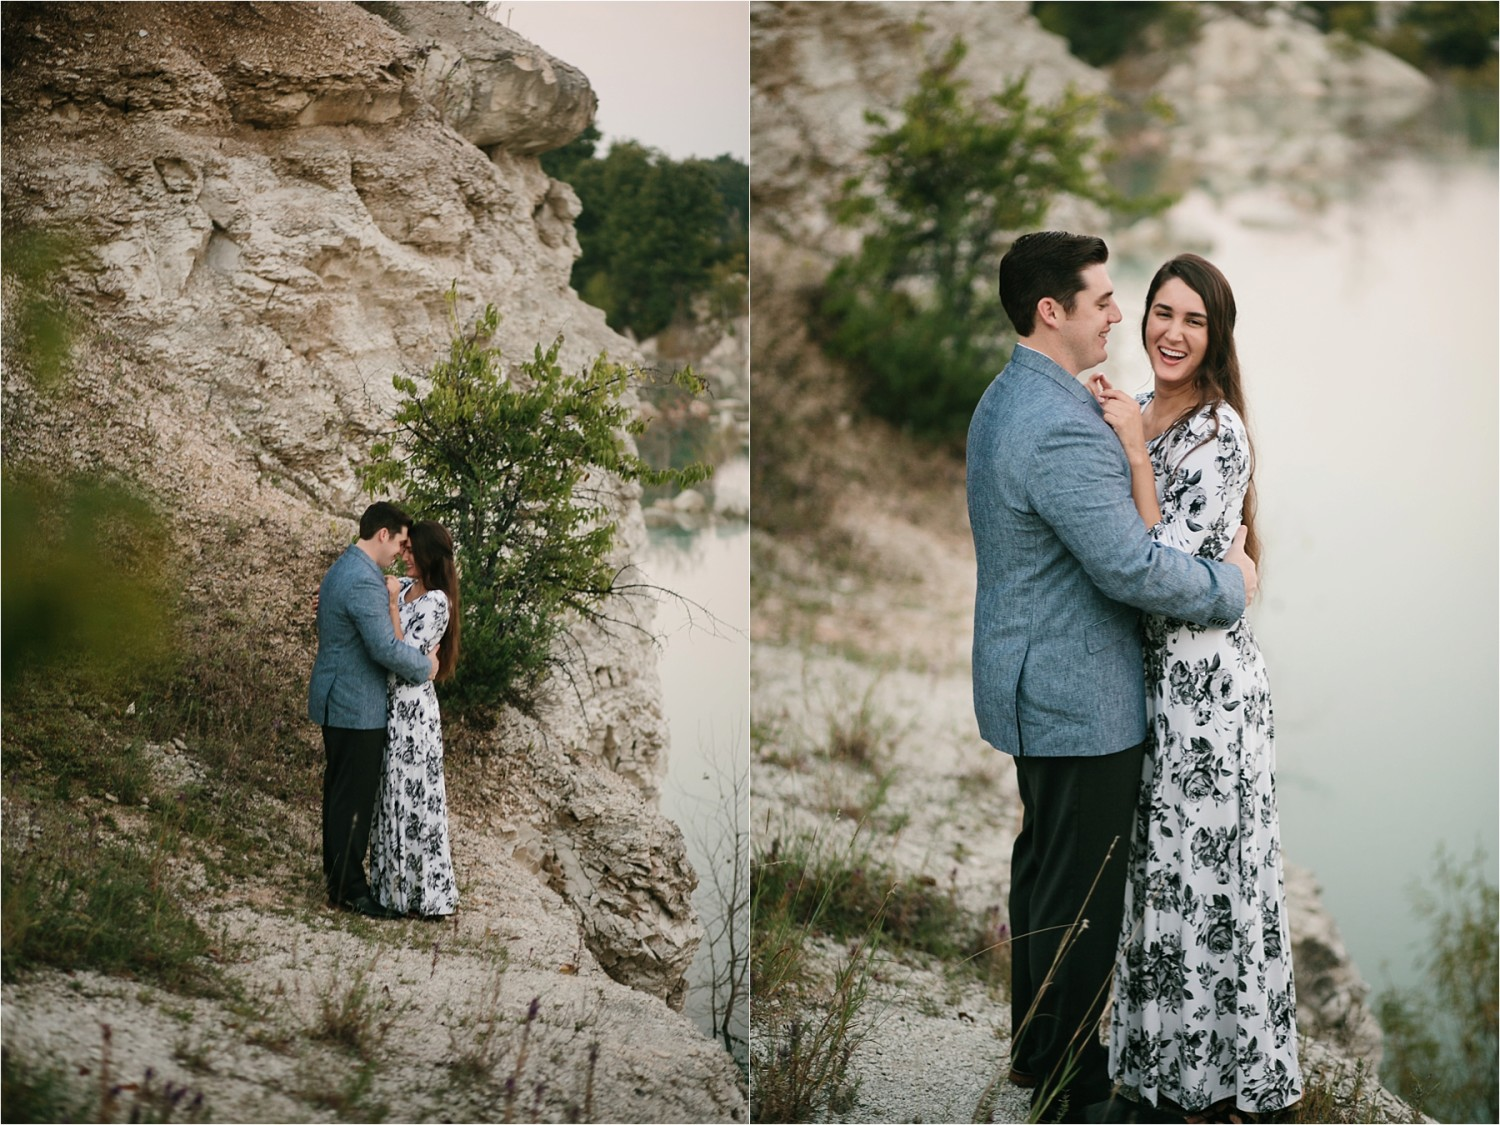 an-intimate-sunrise-session-by-north-texas-wedding-photographer-rachel-meagan-photography-_-04